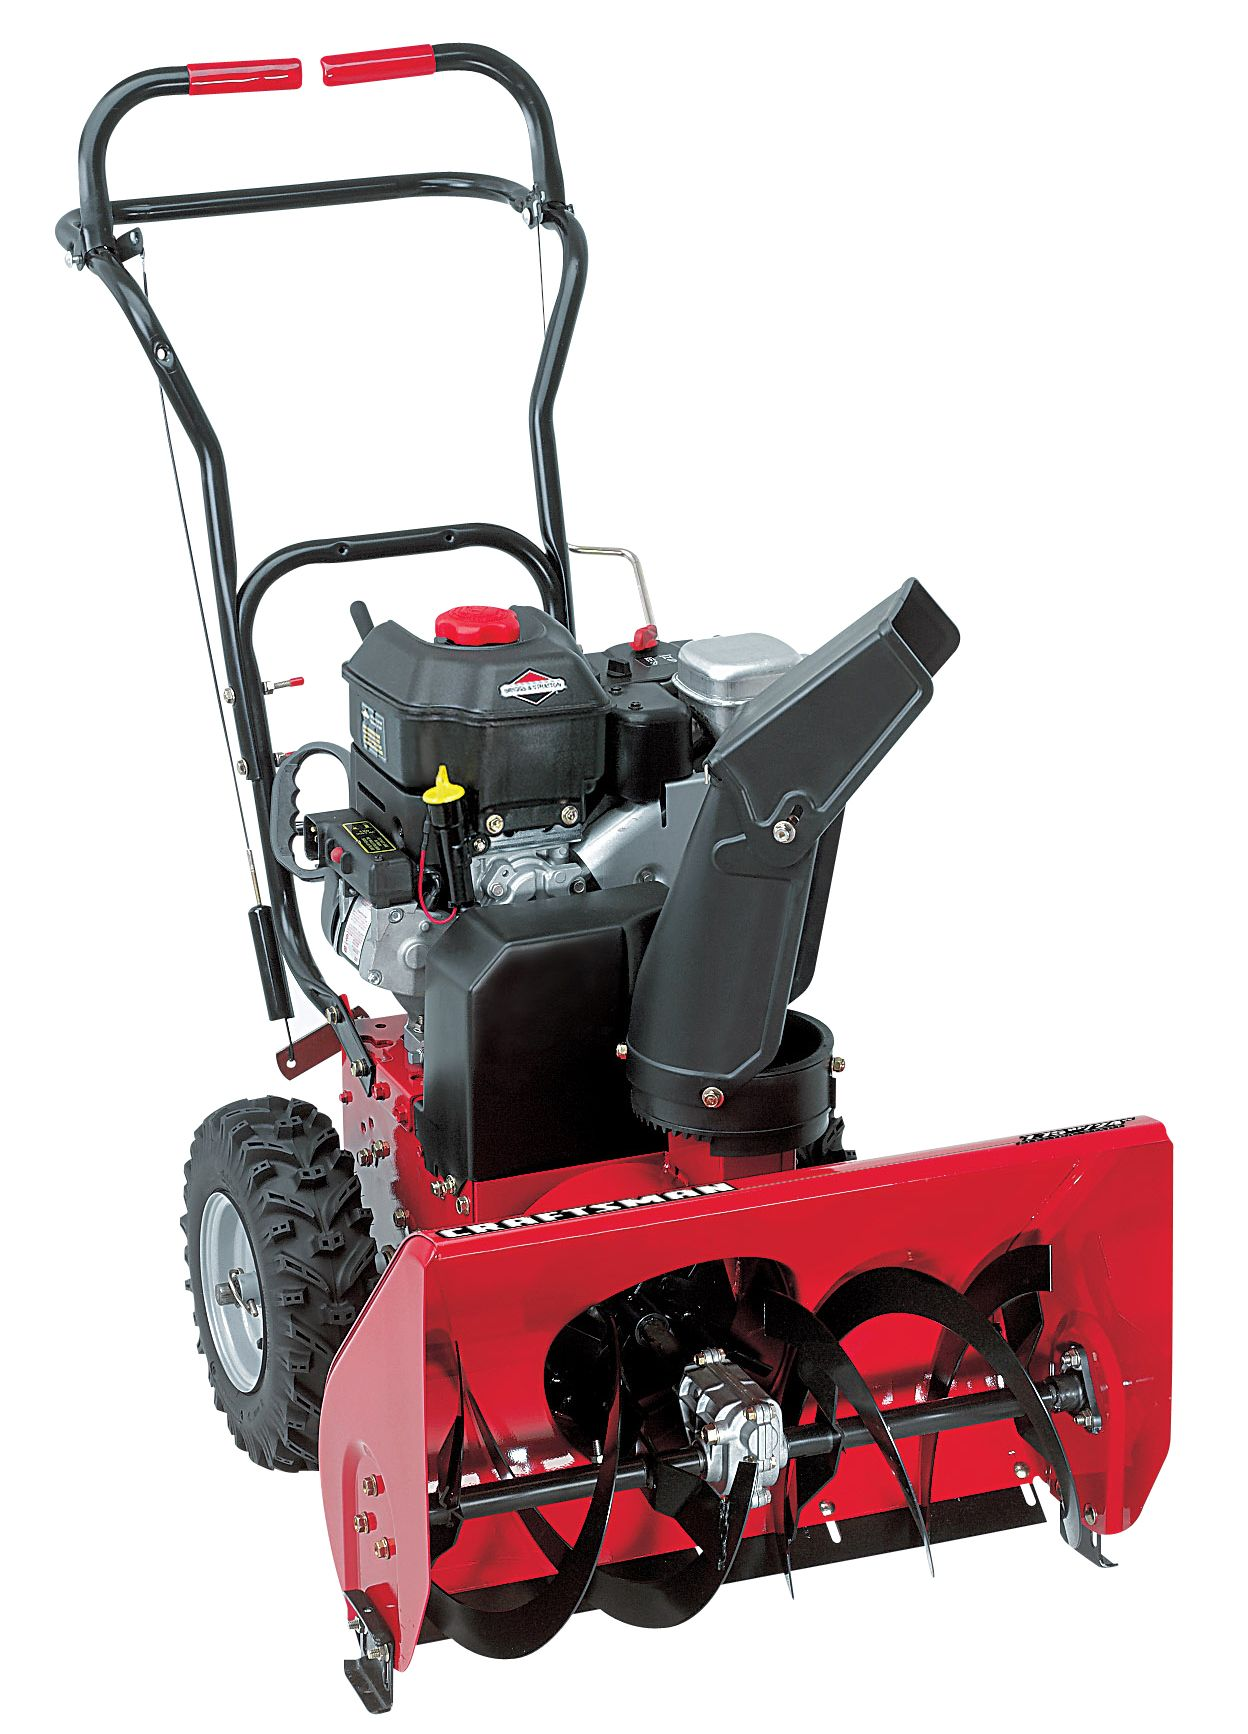 Craftsman Owners Manual Snowblower